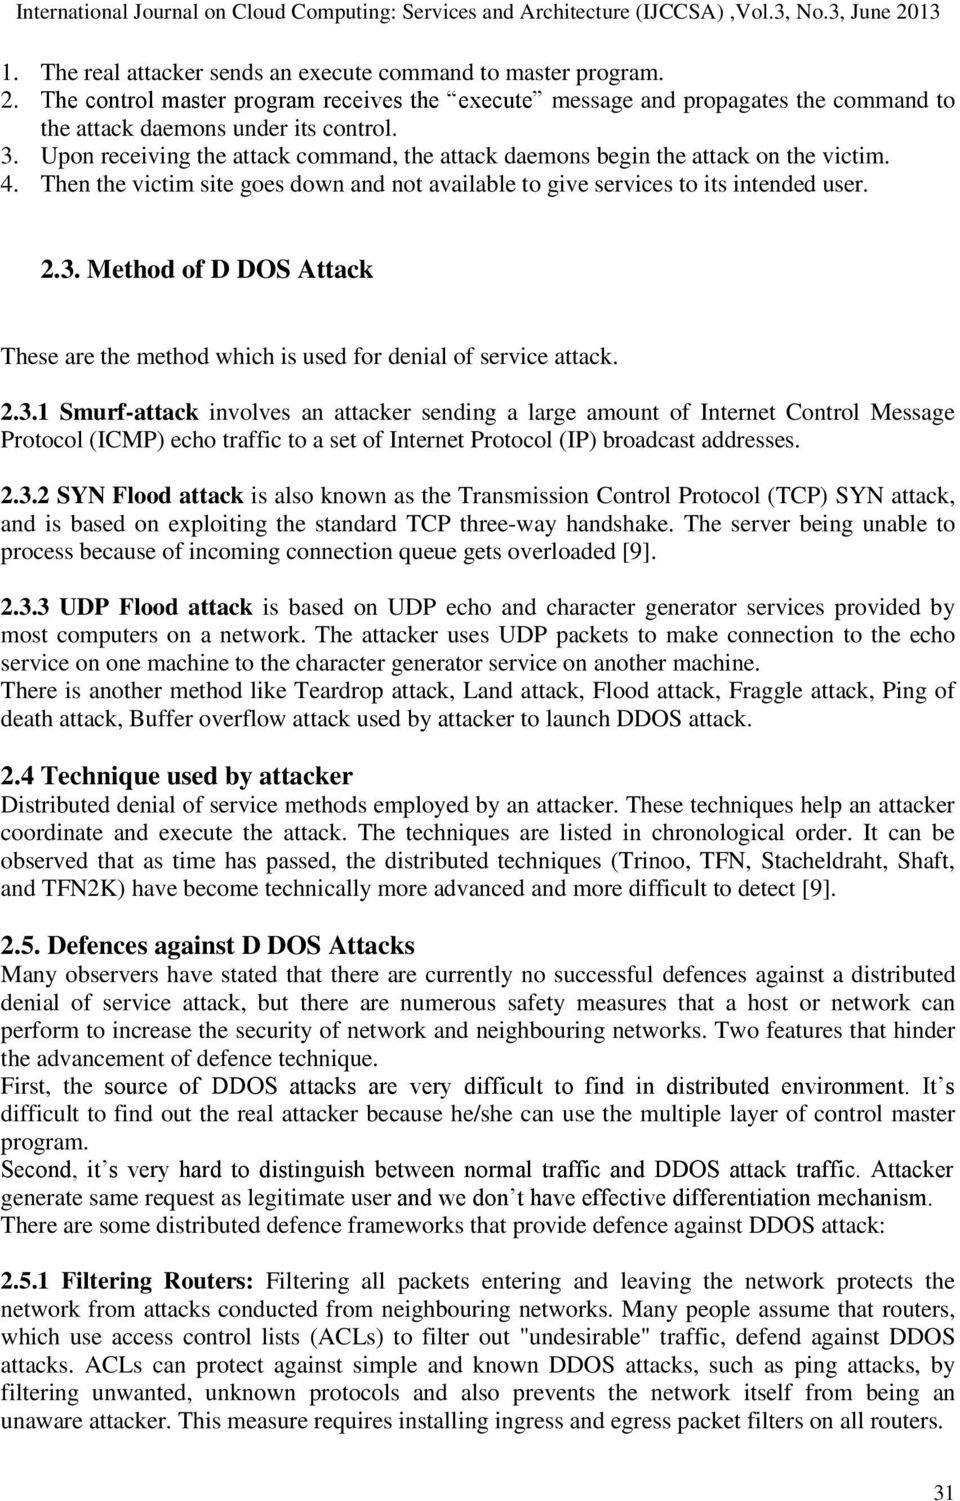 Method of D DOS Attack These are the method which is used for denial of service attack. 2.3.